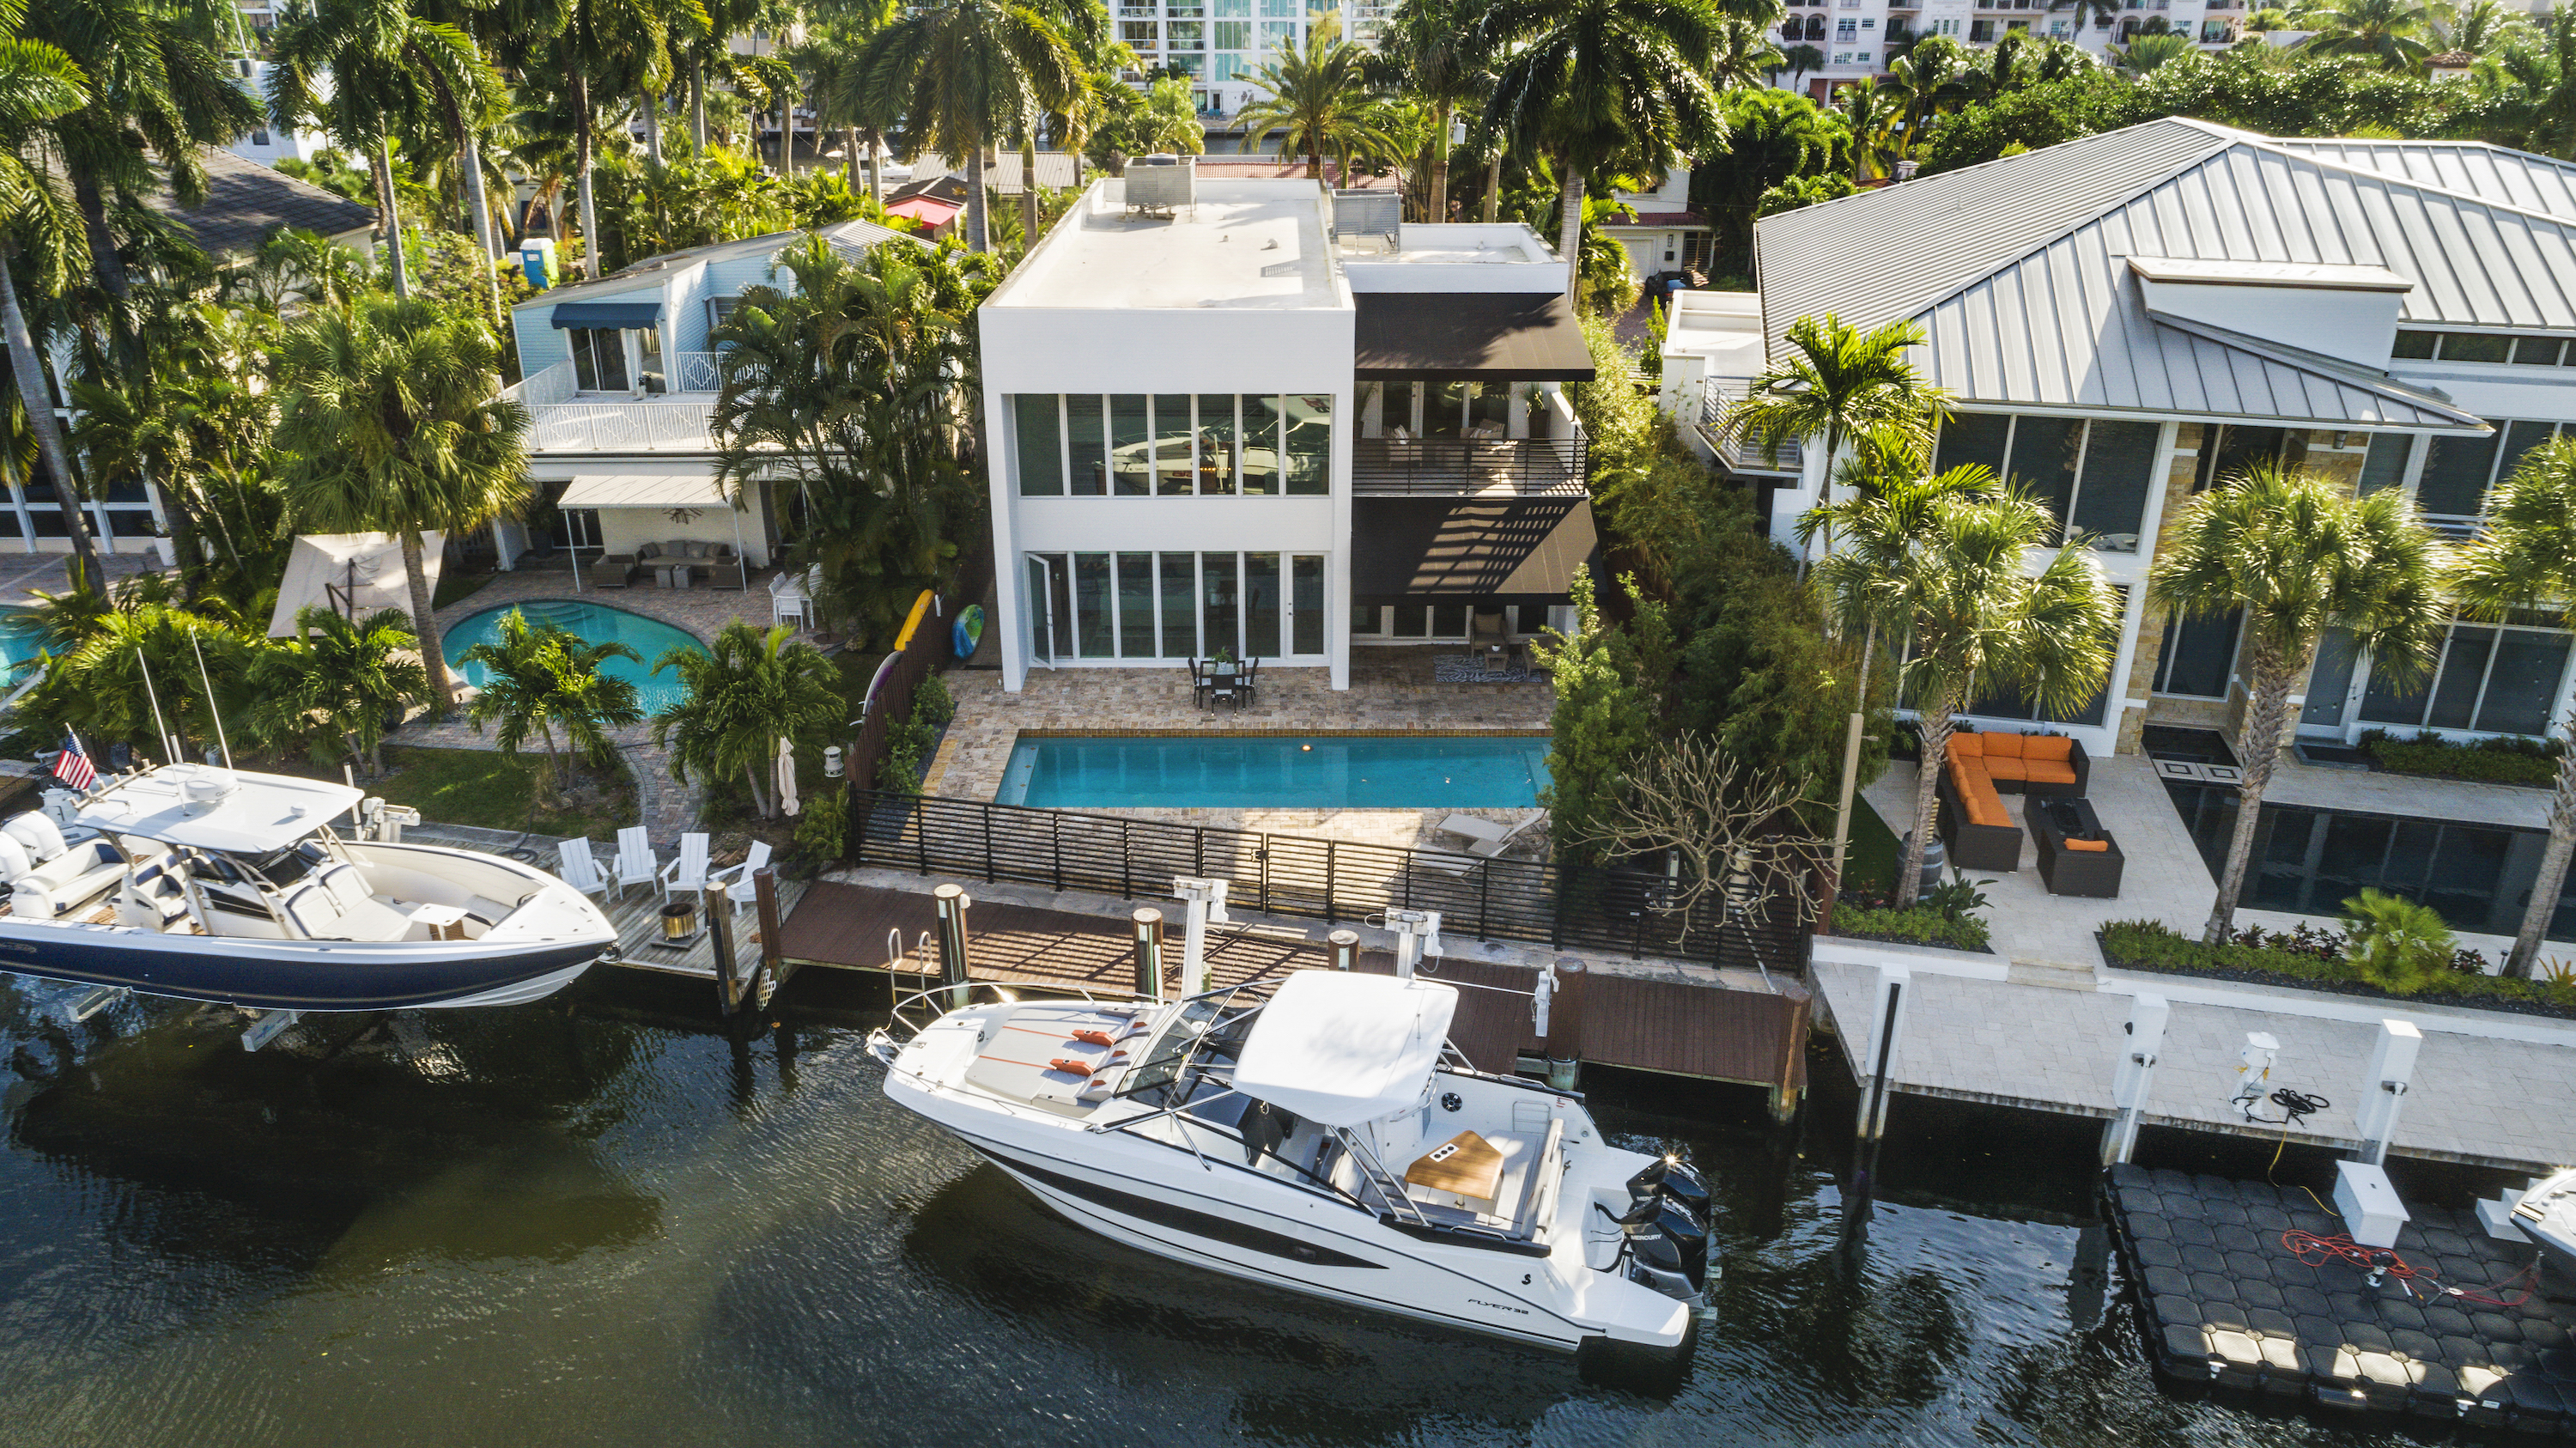 An aerial view of a waterfront all-white, boxy home. There's a pool and a boat in front.